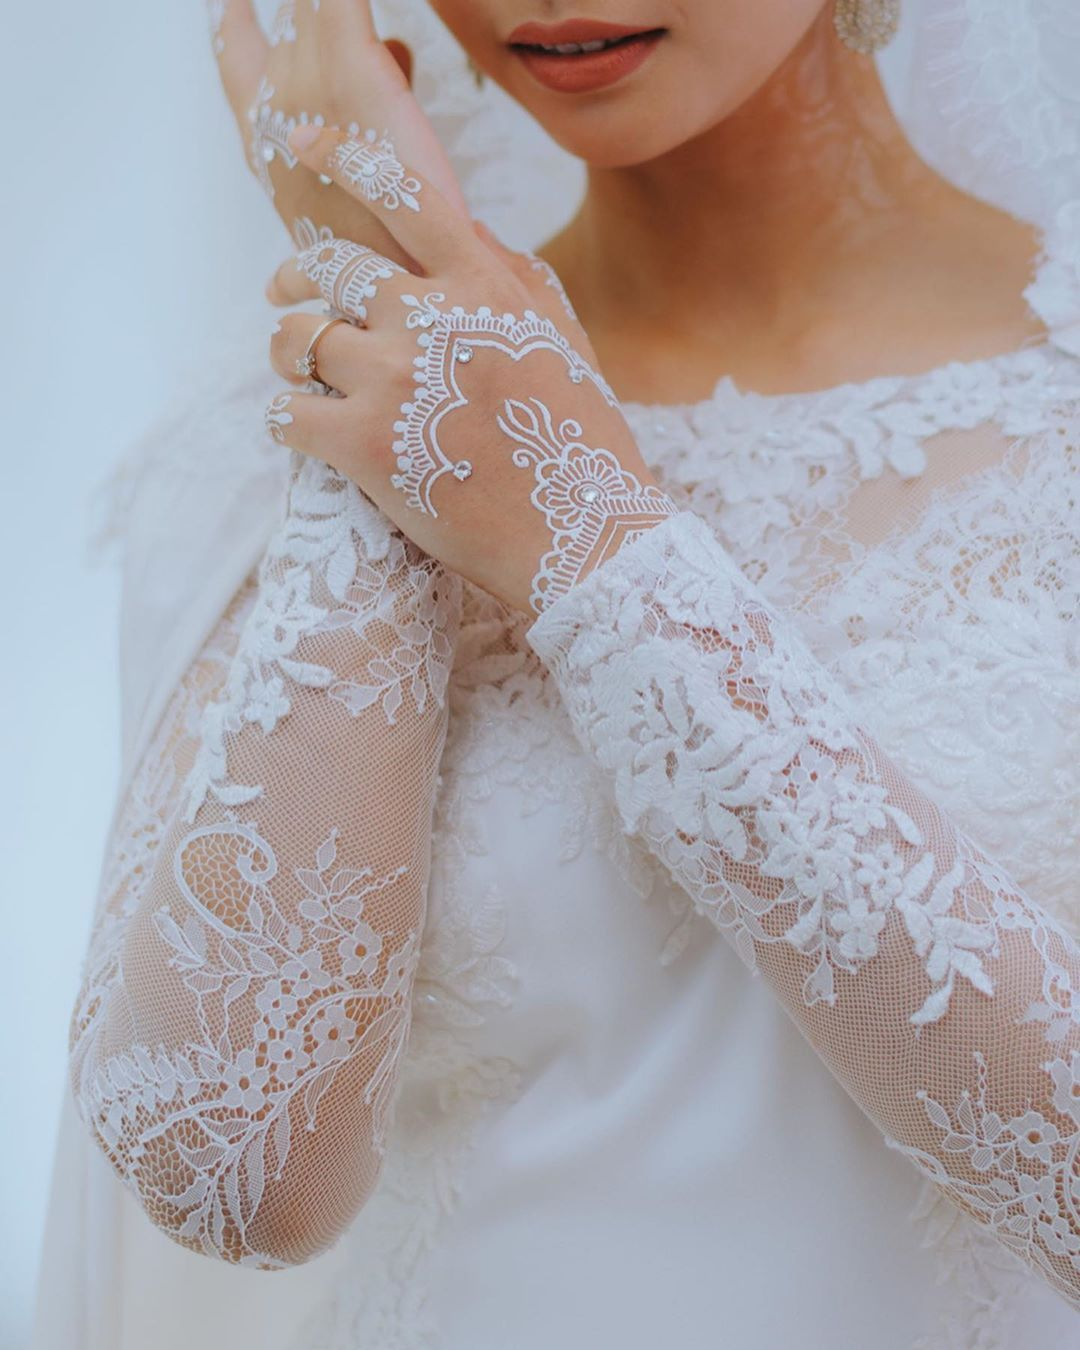 White Wedding Dress With Henna: BRIDAL WHITE HENNA SERIES • Get Your White Henna Done For